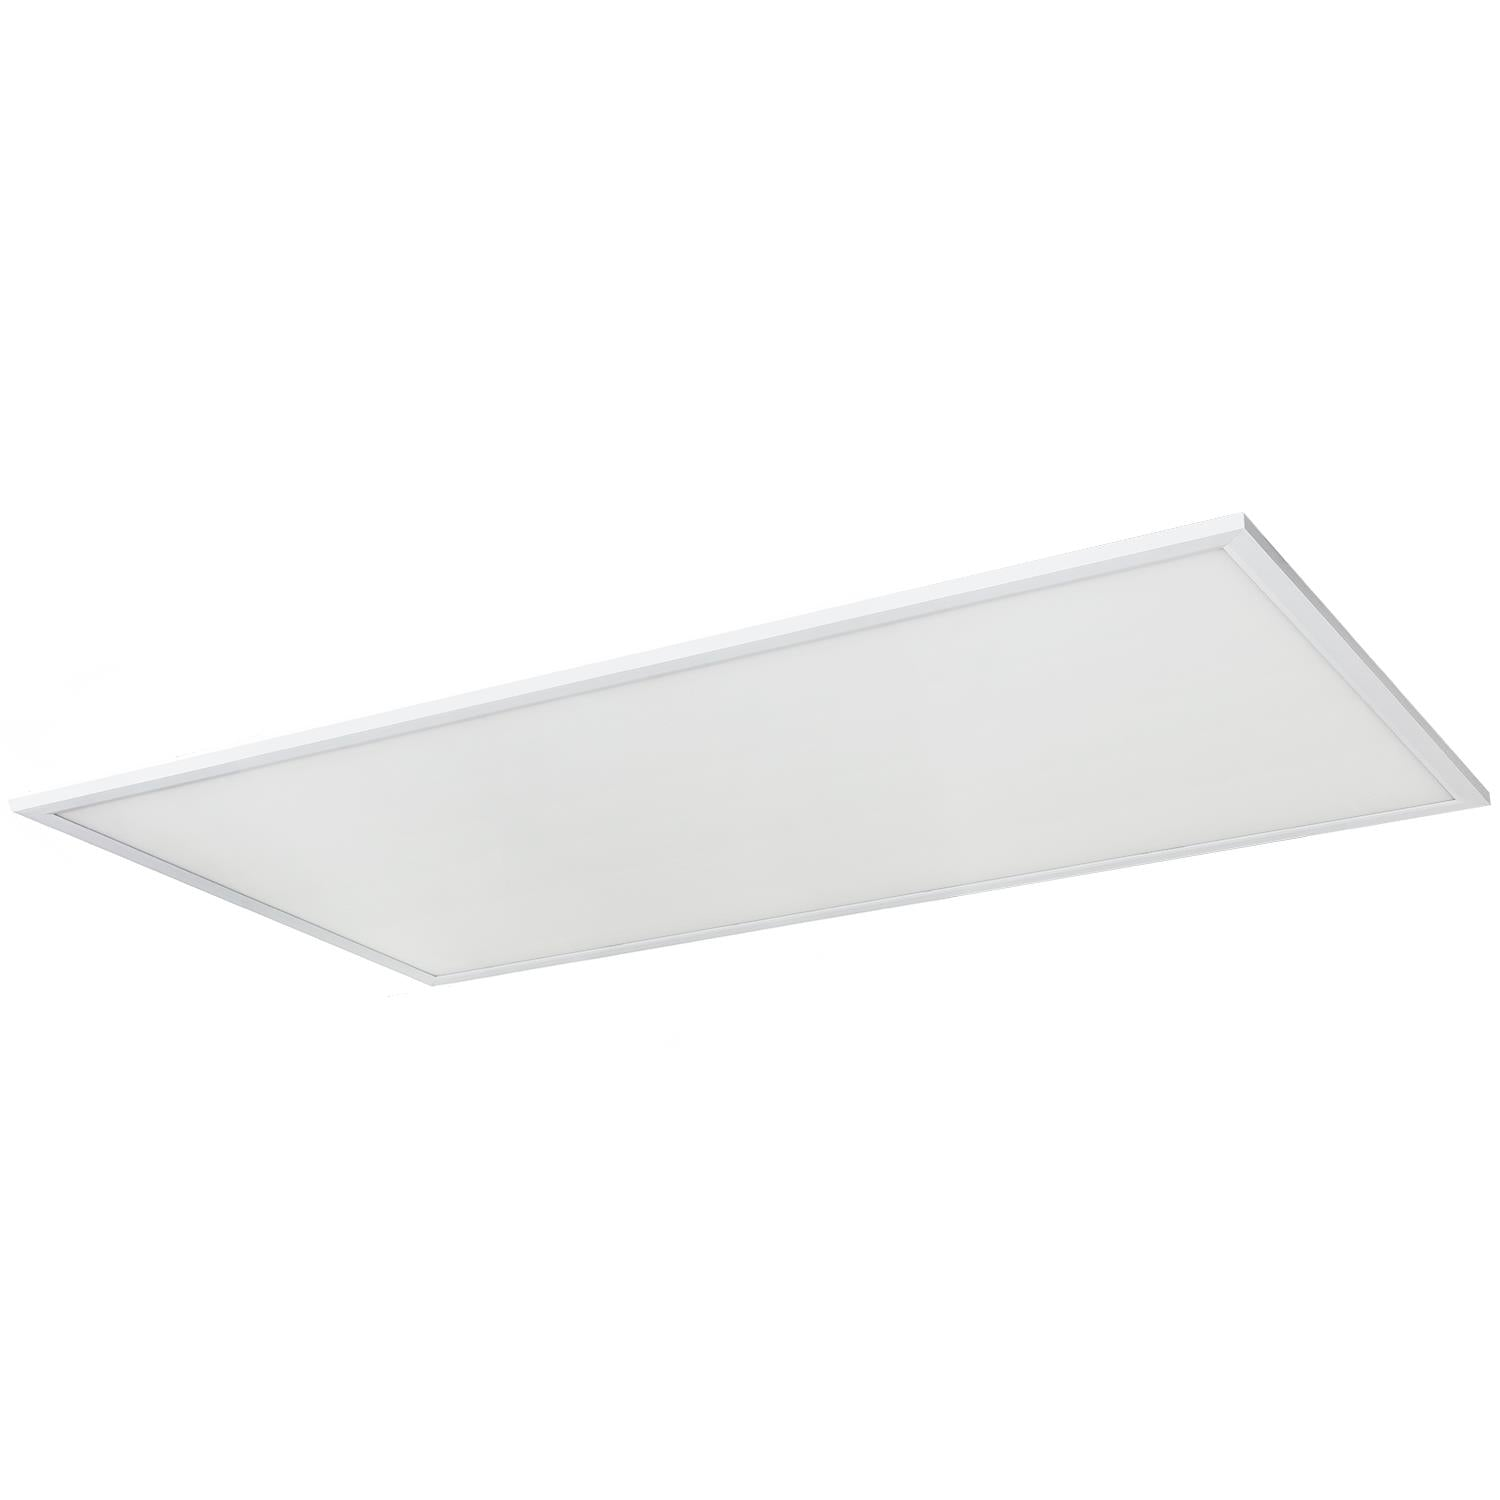 SUNLITE 85199-SU 60w 100-277v (2X4) LED Light Fixture Flat Panel - 5000K